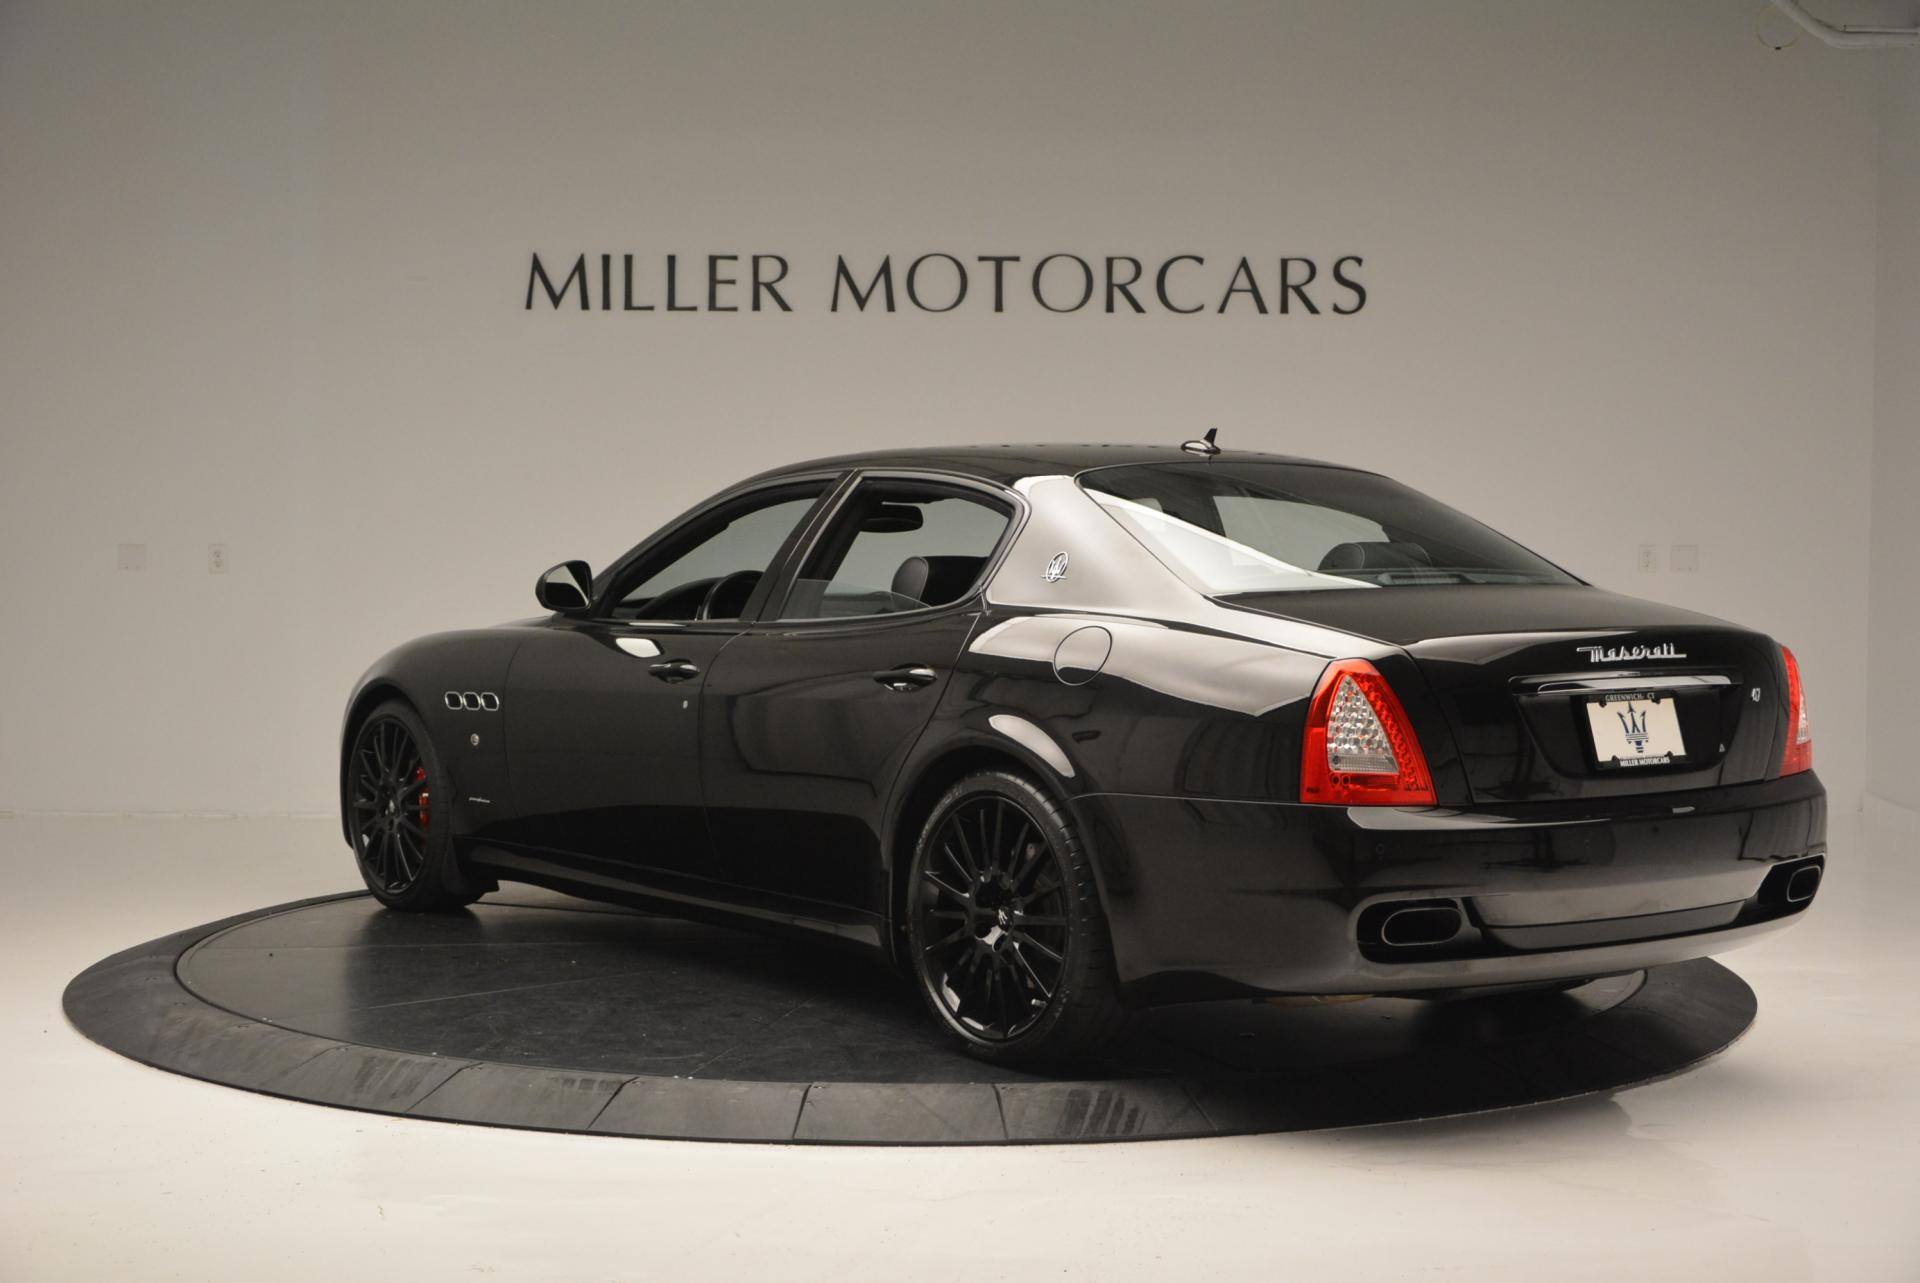 Used 2011 Maserati Quattroporte Sport GT S For Sale In Greenwich, CT. Alfa Romeo of Greenwich, 7080 531_p5